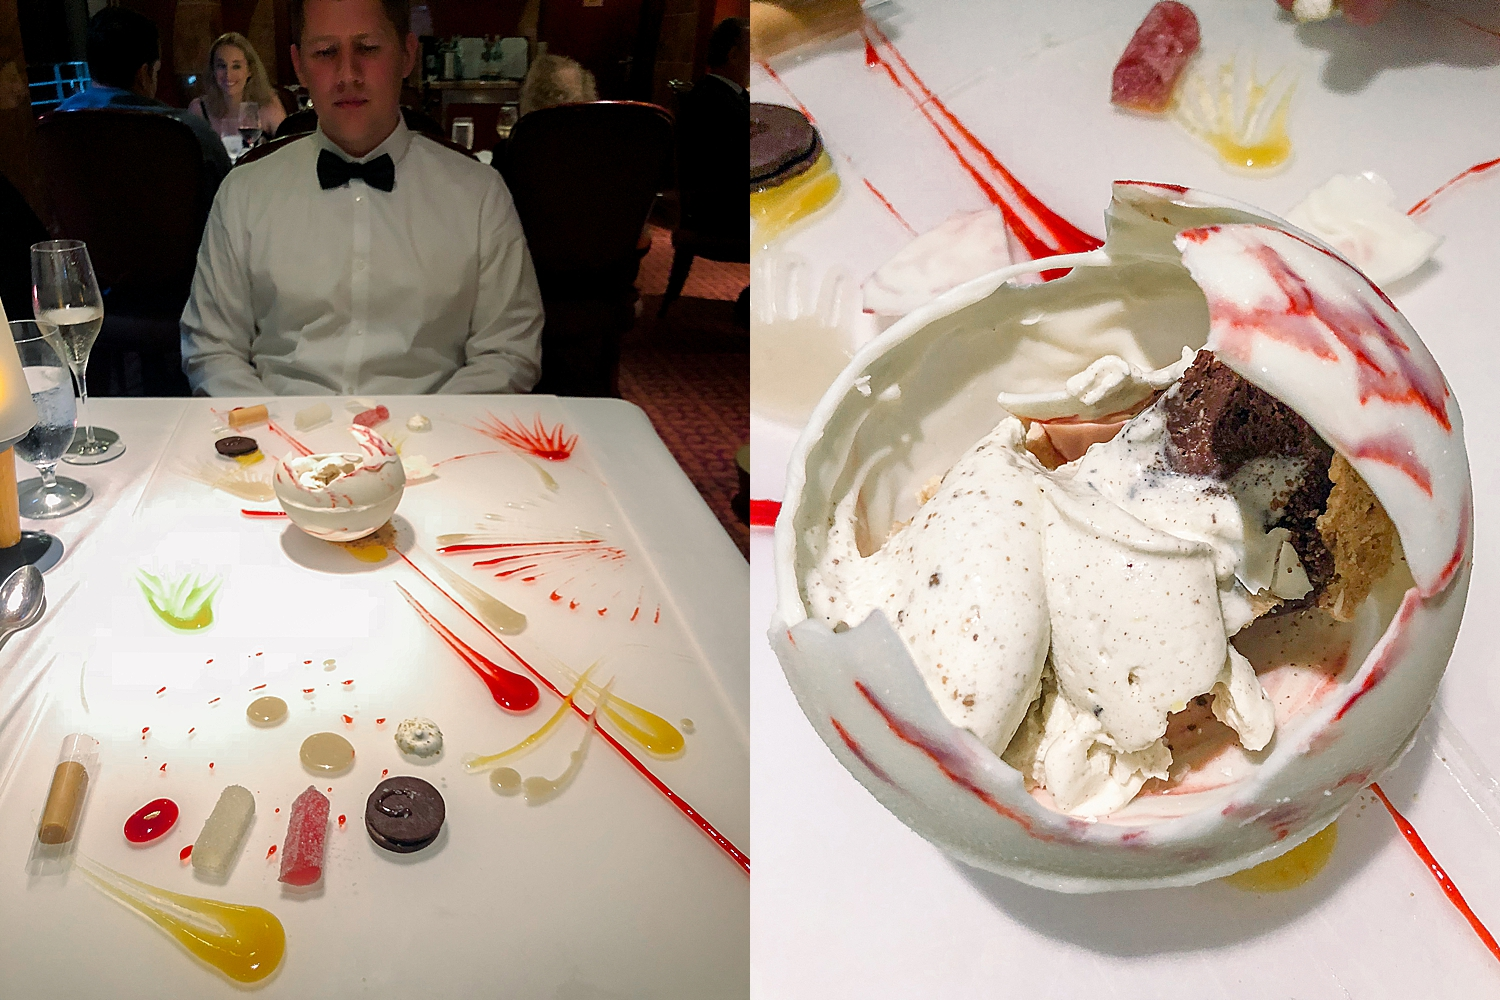 The 'Art at Your Table' Dessert offered by the Pinnacle Steakhouse on Carnival Splendor. Photos by Jade Min.